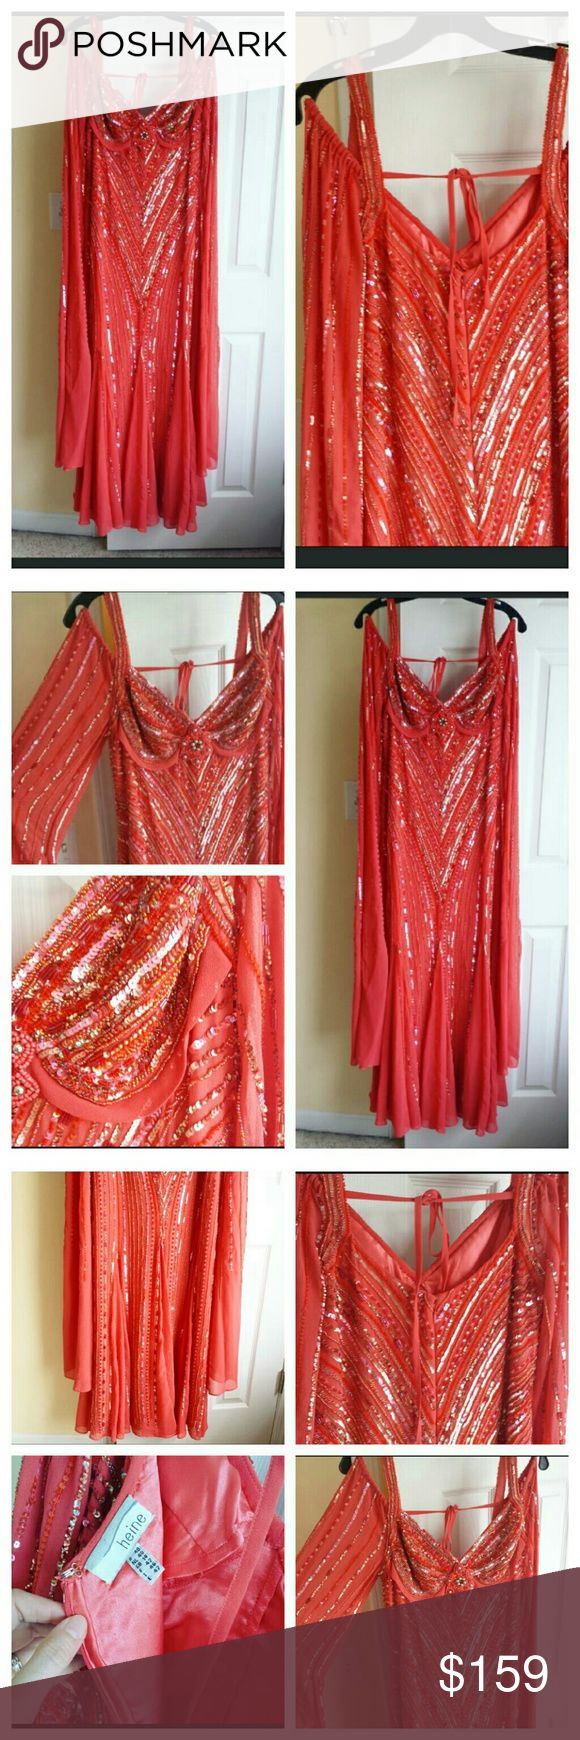 Coral Formal Dress Additional Photos Additional photos See other Listing. Heine Dresses Prom